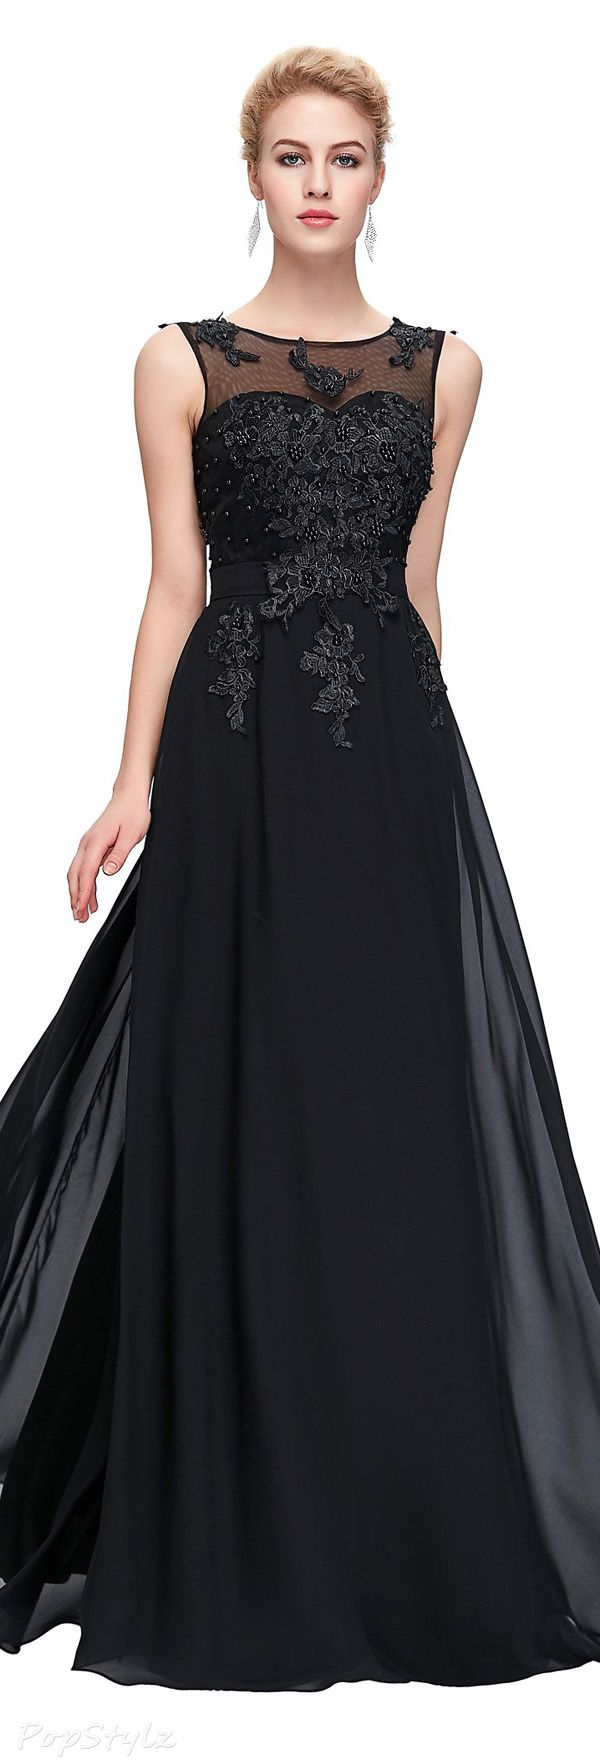 2529 best evening dresses images on pinterest | blouses, costumes